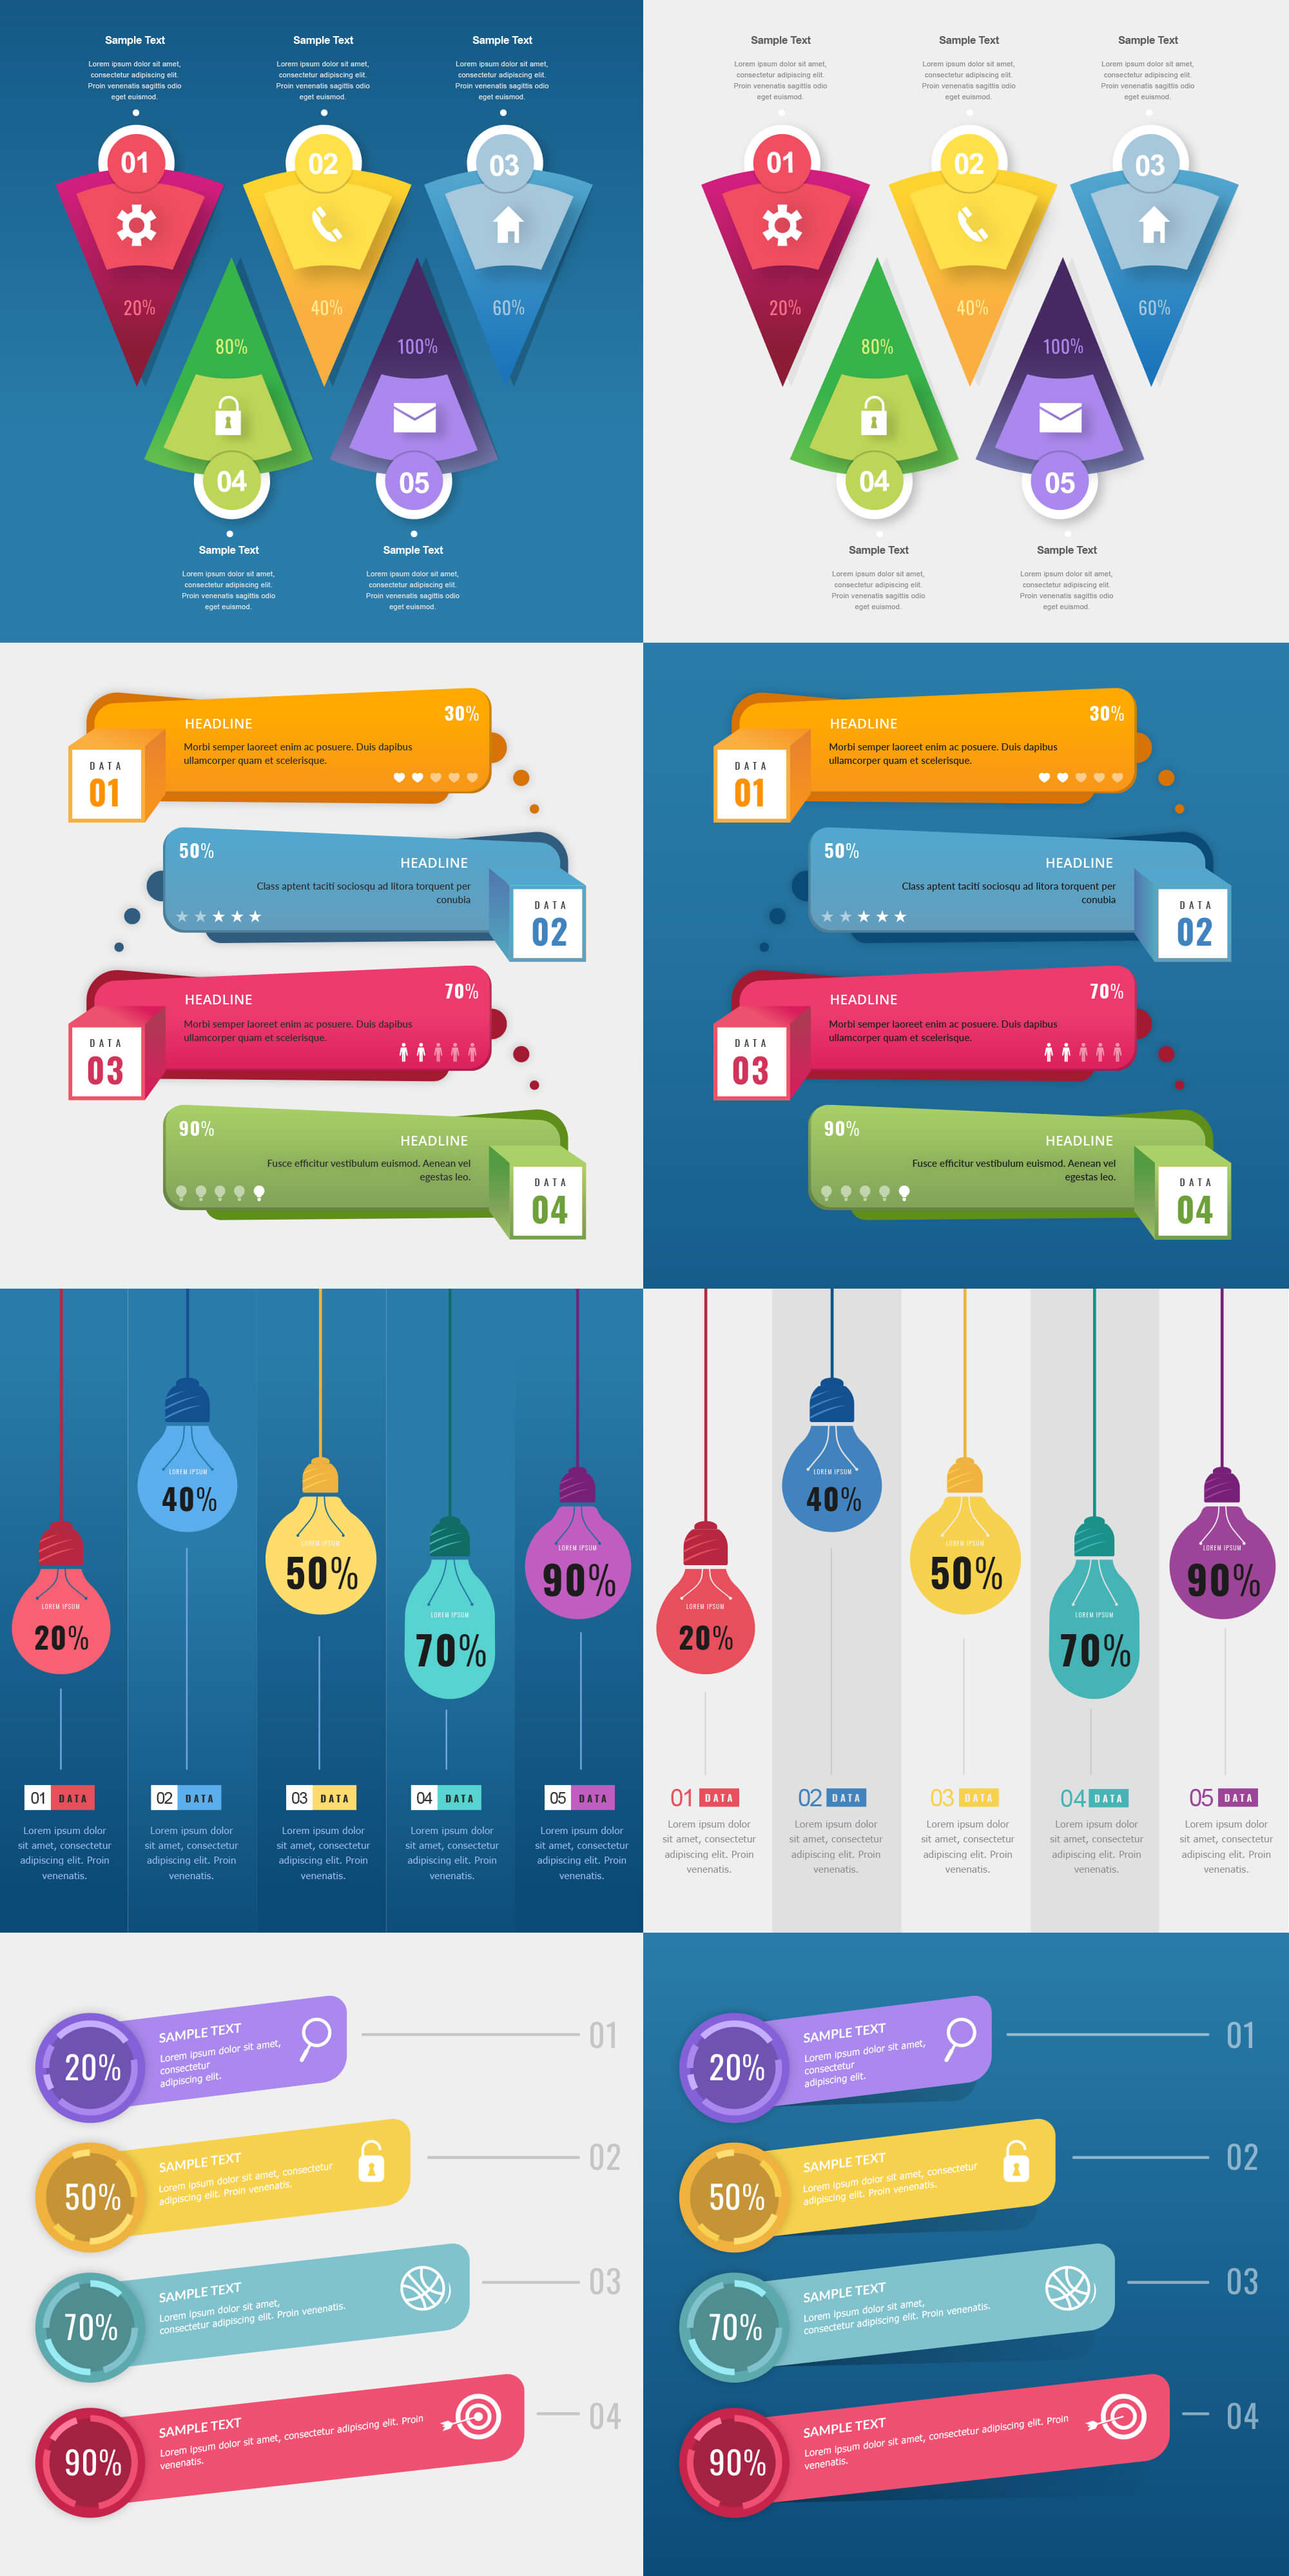 Free Download: Infographic Templates - MightyDeals